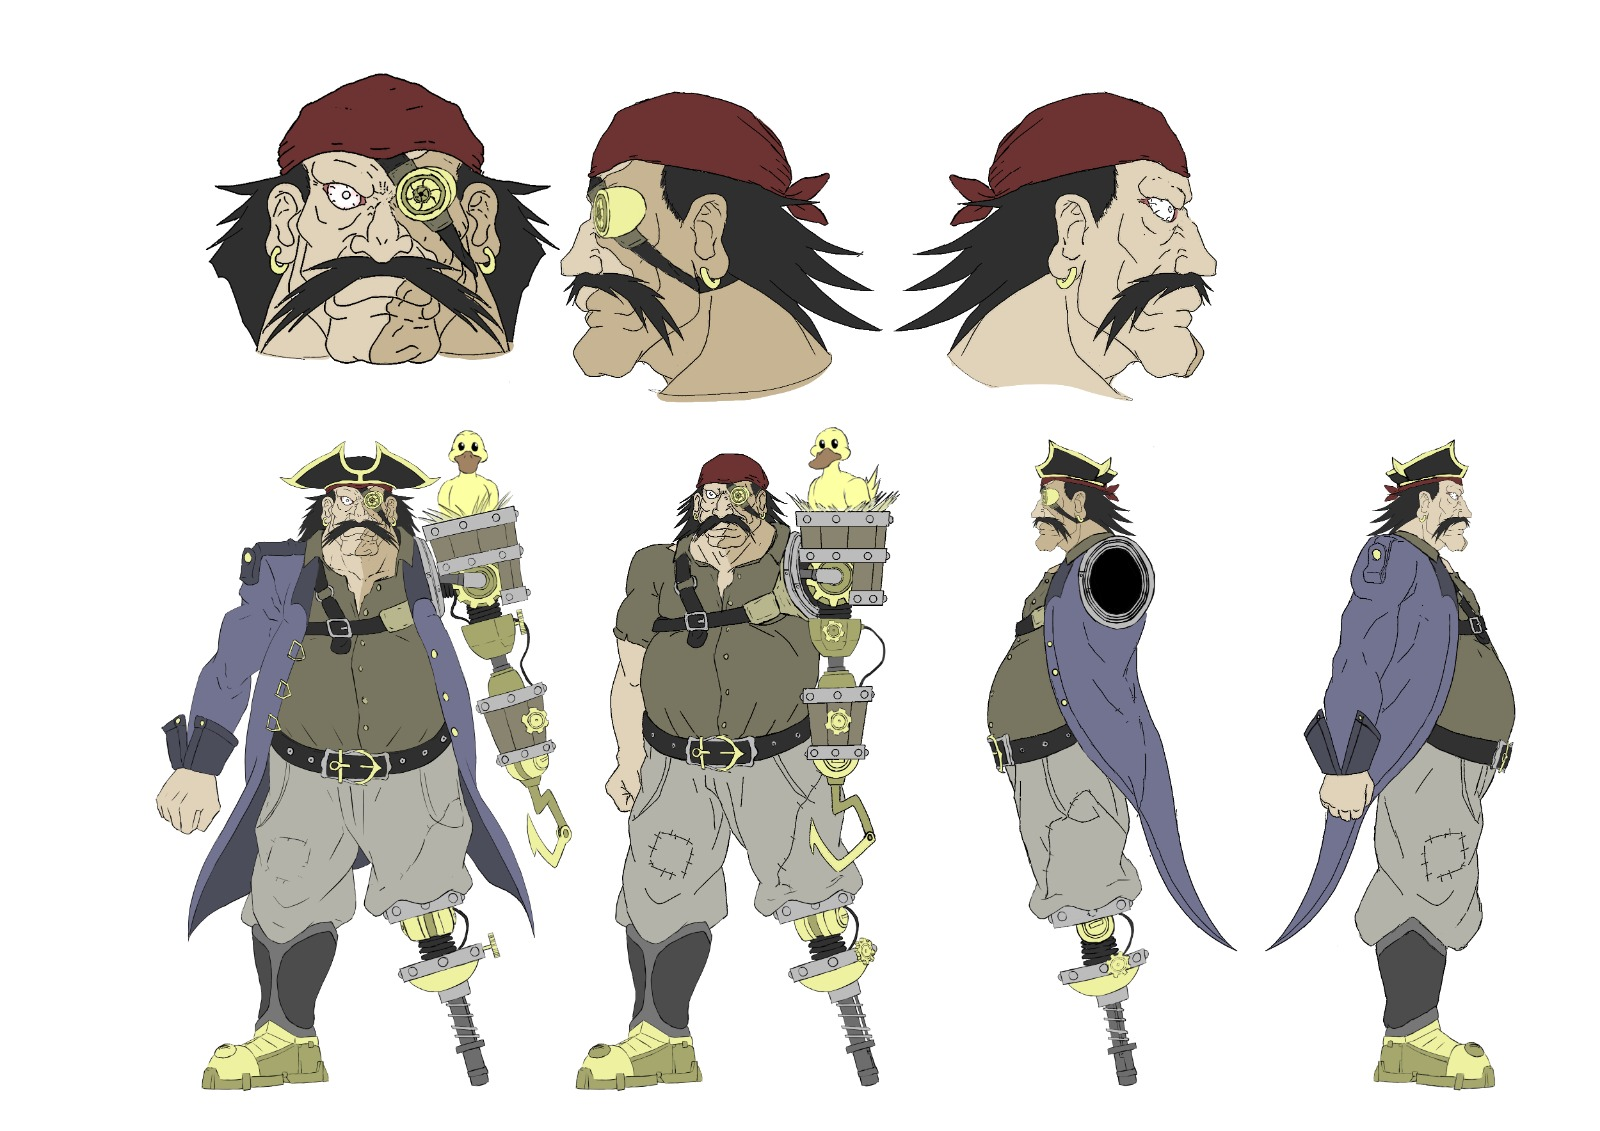 Concept art Pirate 2